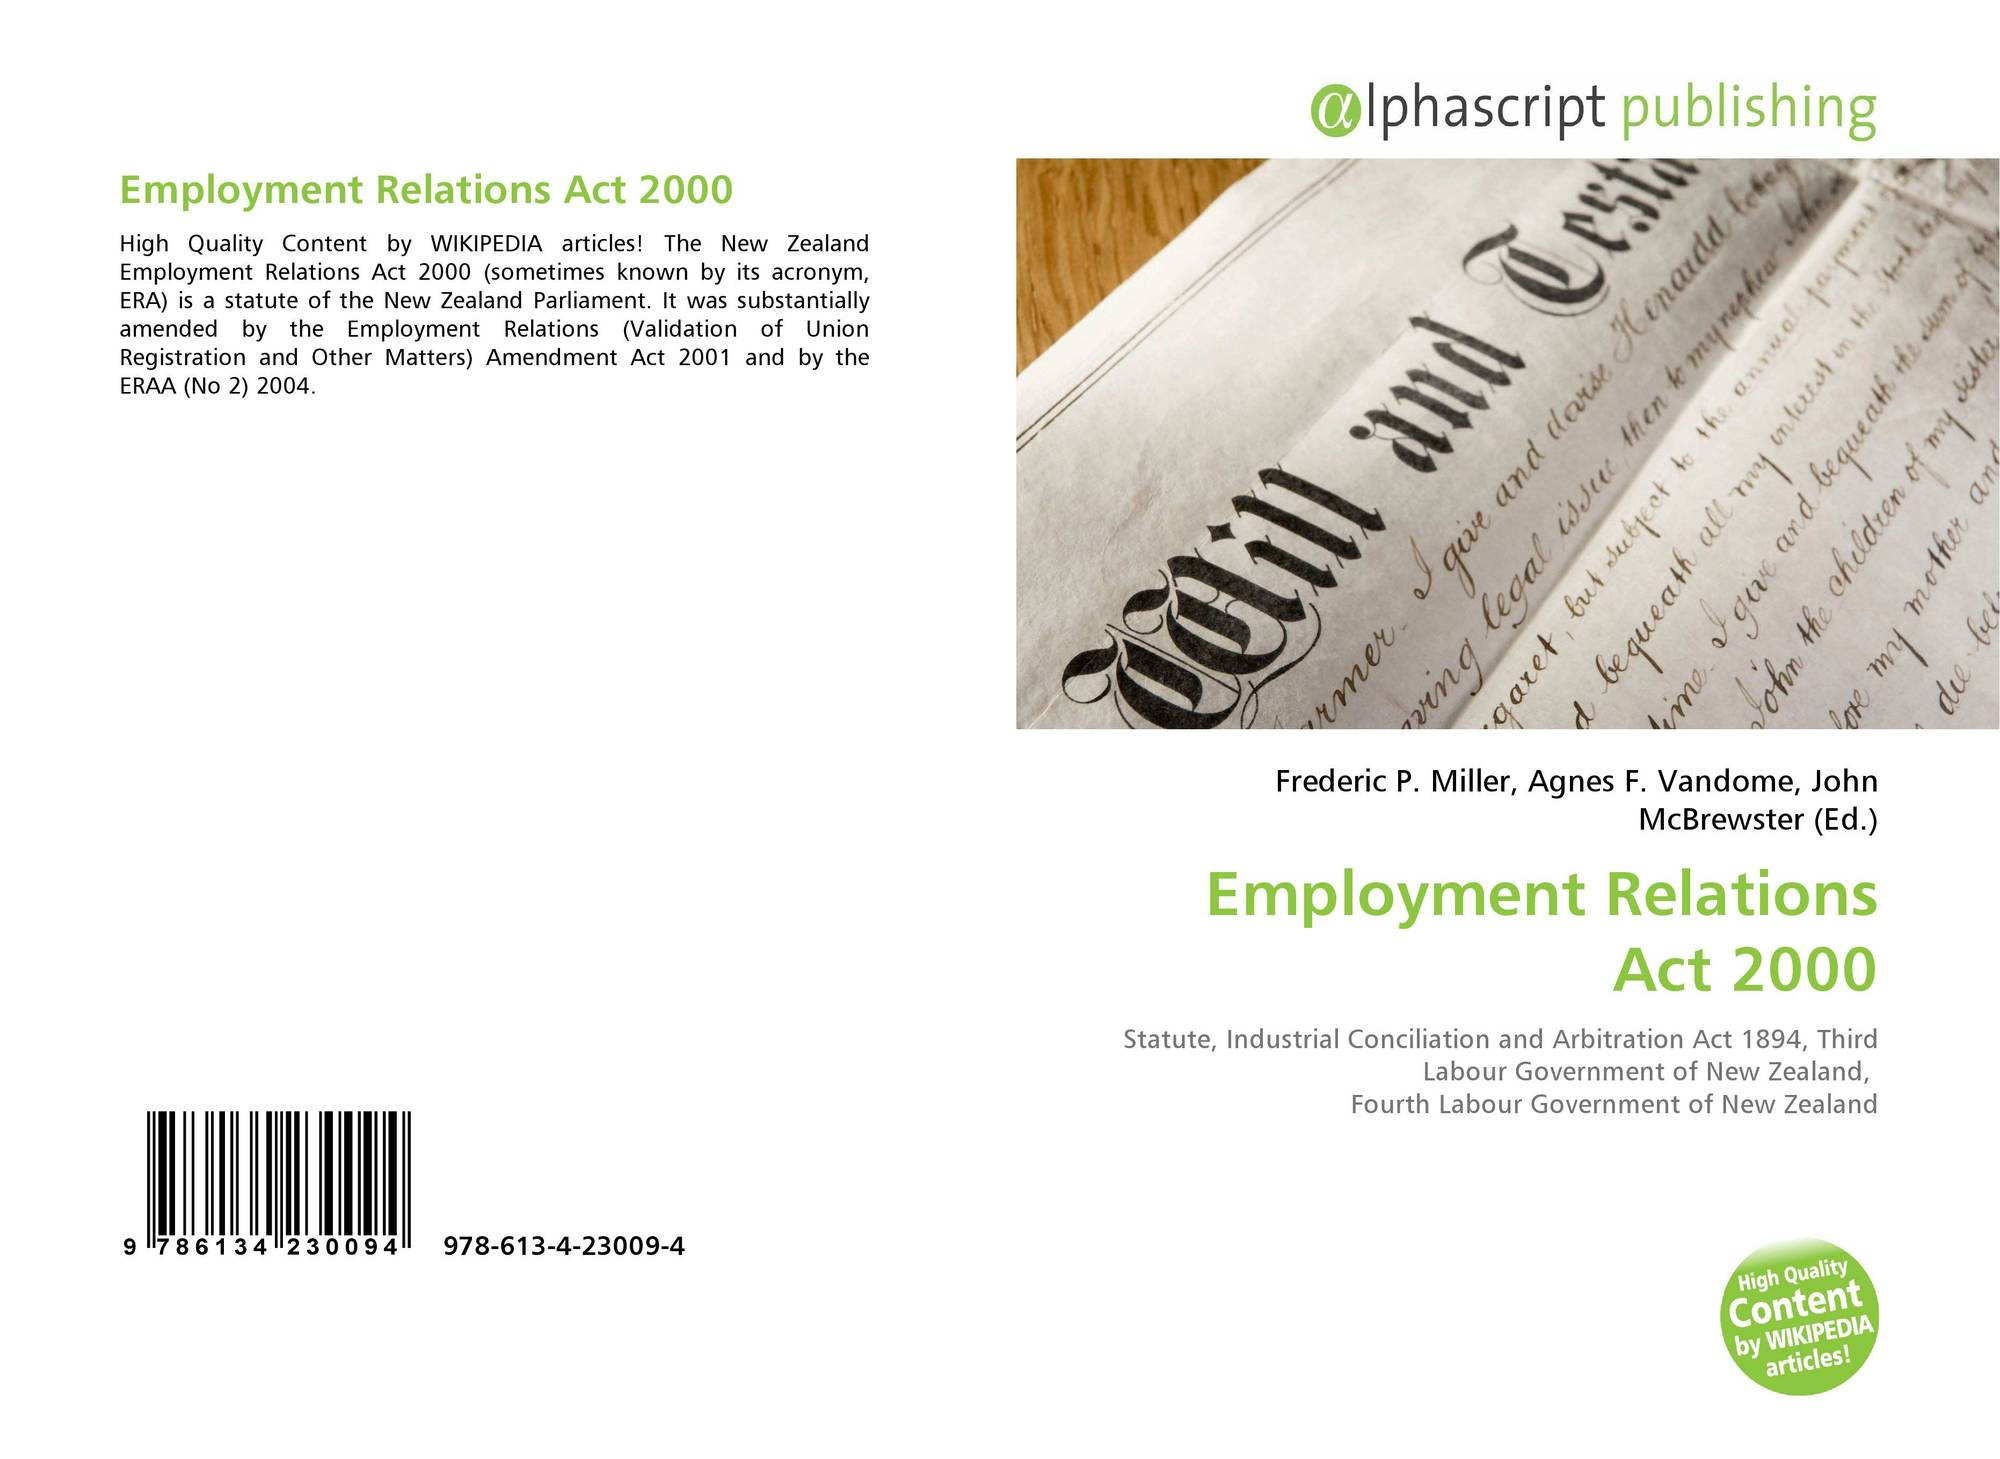 employment relation What is employee relations employee relations offers consultation, facilitation and resolution strategies for workplace issues employee relations assists in communications between employees and supervisors, corrective action and planning, disciplinary actions, and explanation and clarification of university policies and procedures.